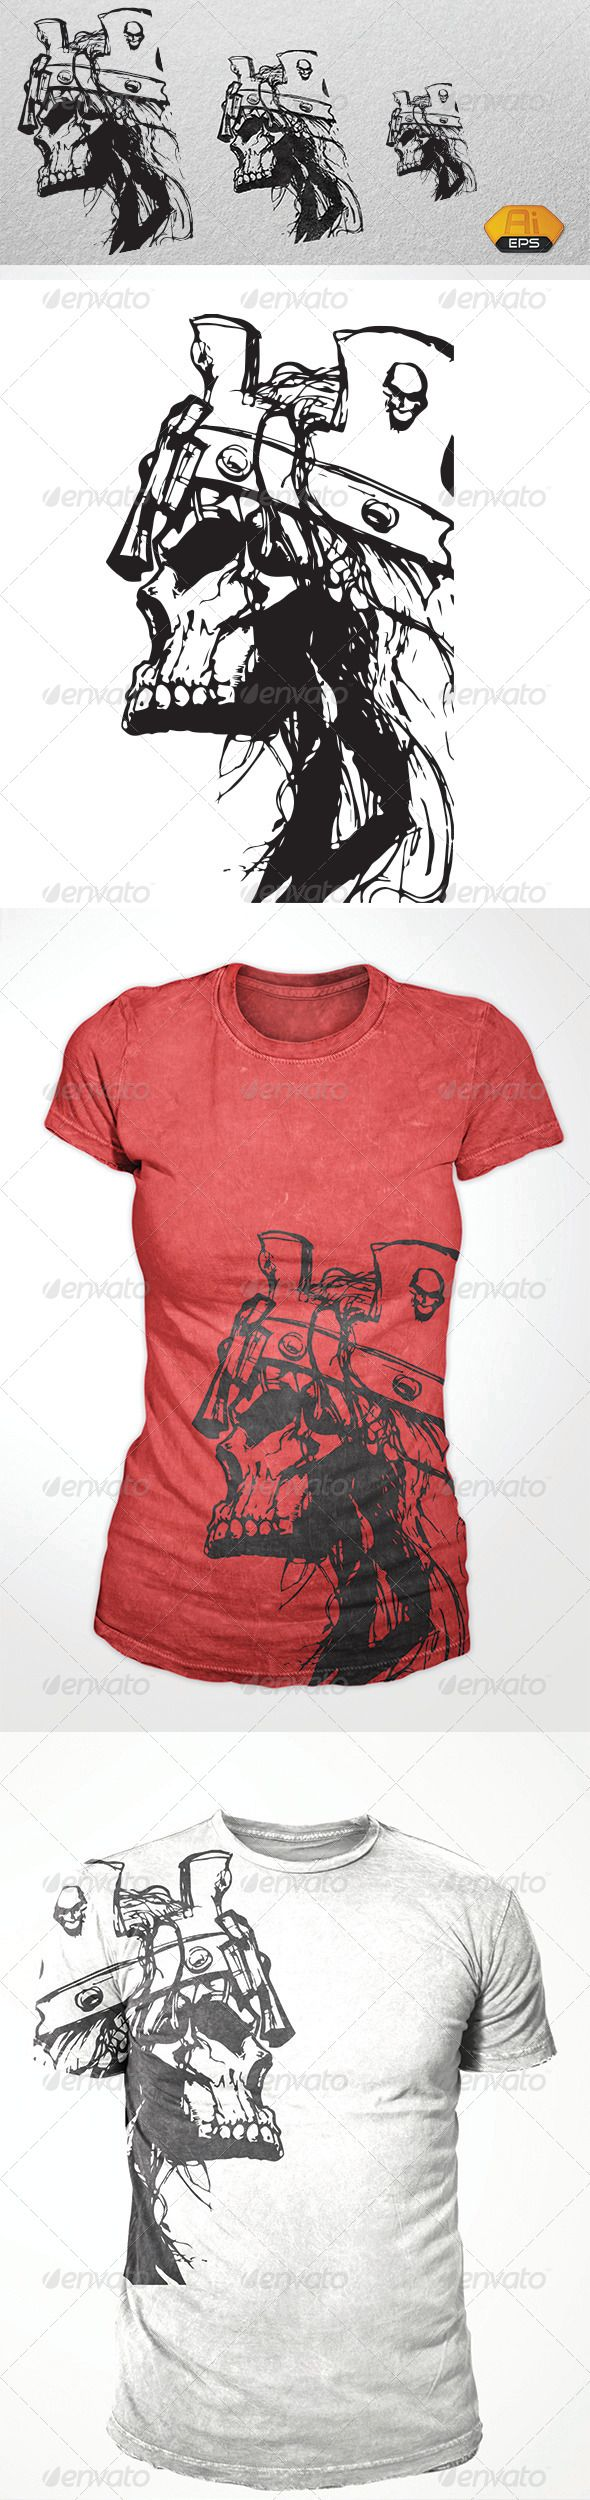 T shirt design jquery - T Shirt Design Jquery Dead King Skull Download